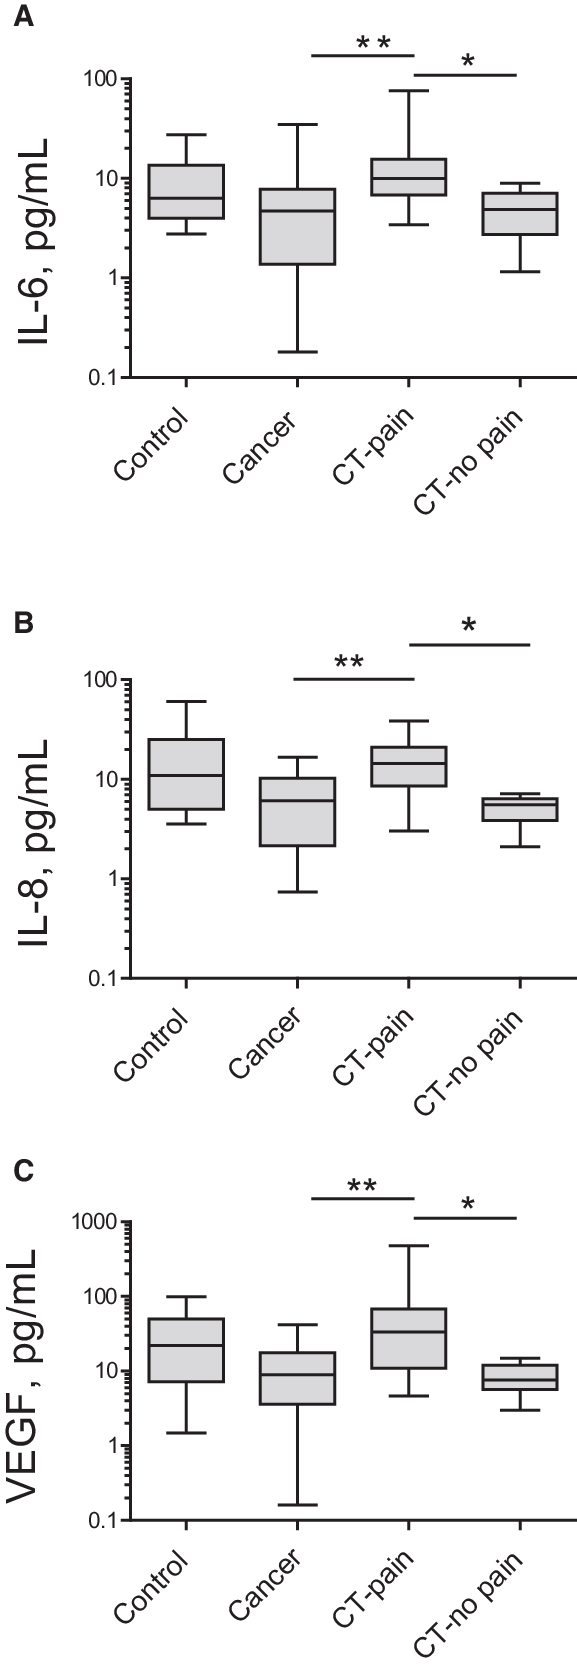 medium resolution of plasma concentrations of cytokines in healthy individuals control untreated prostate cancer patients and chemotherapy treated prostate cancer patients